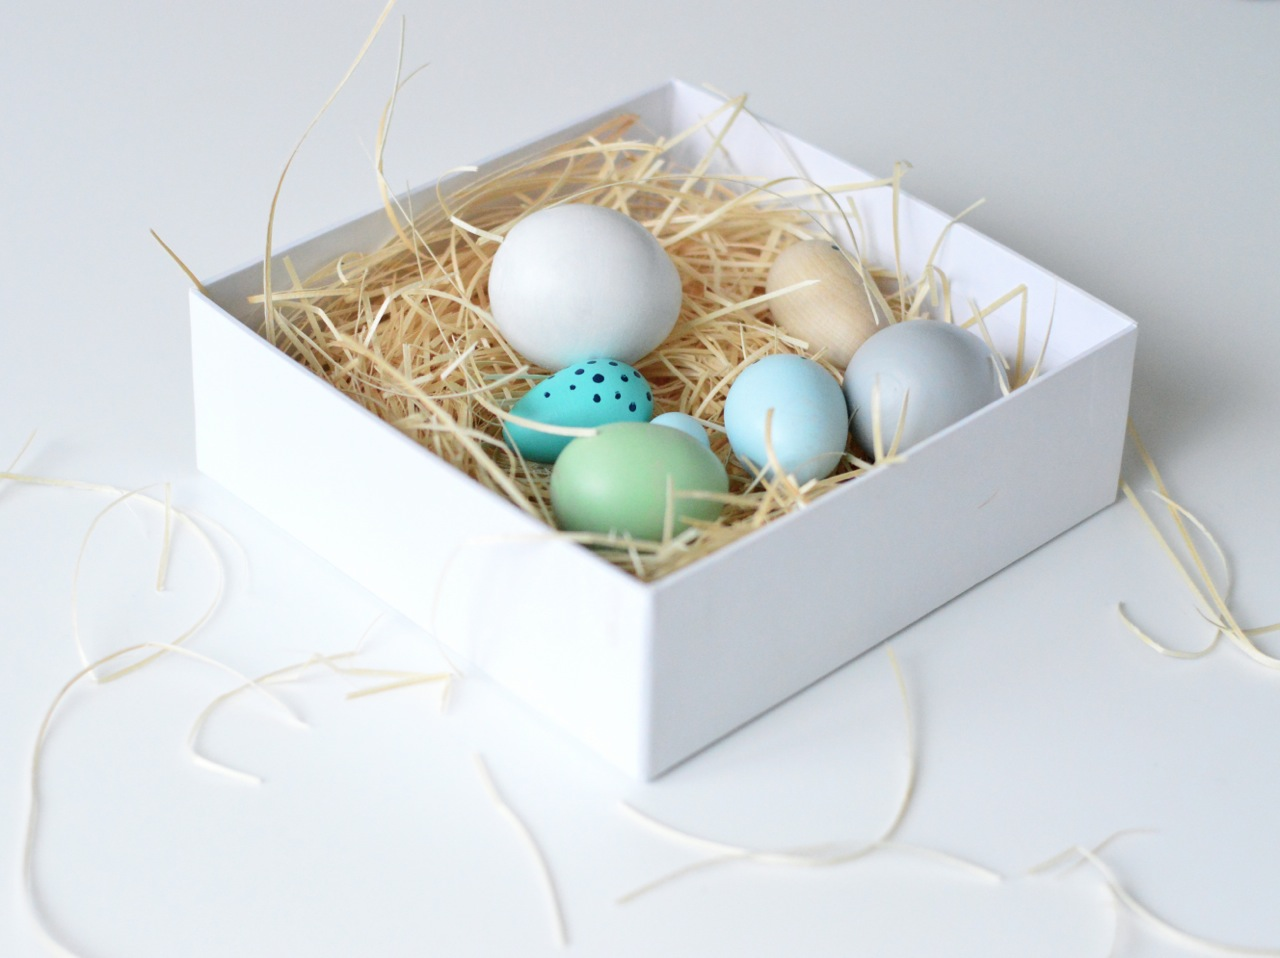 handmade wooden toy eggs